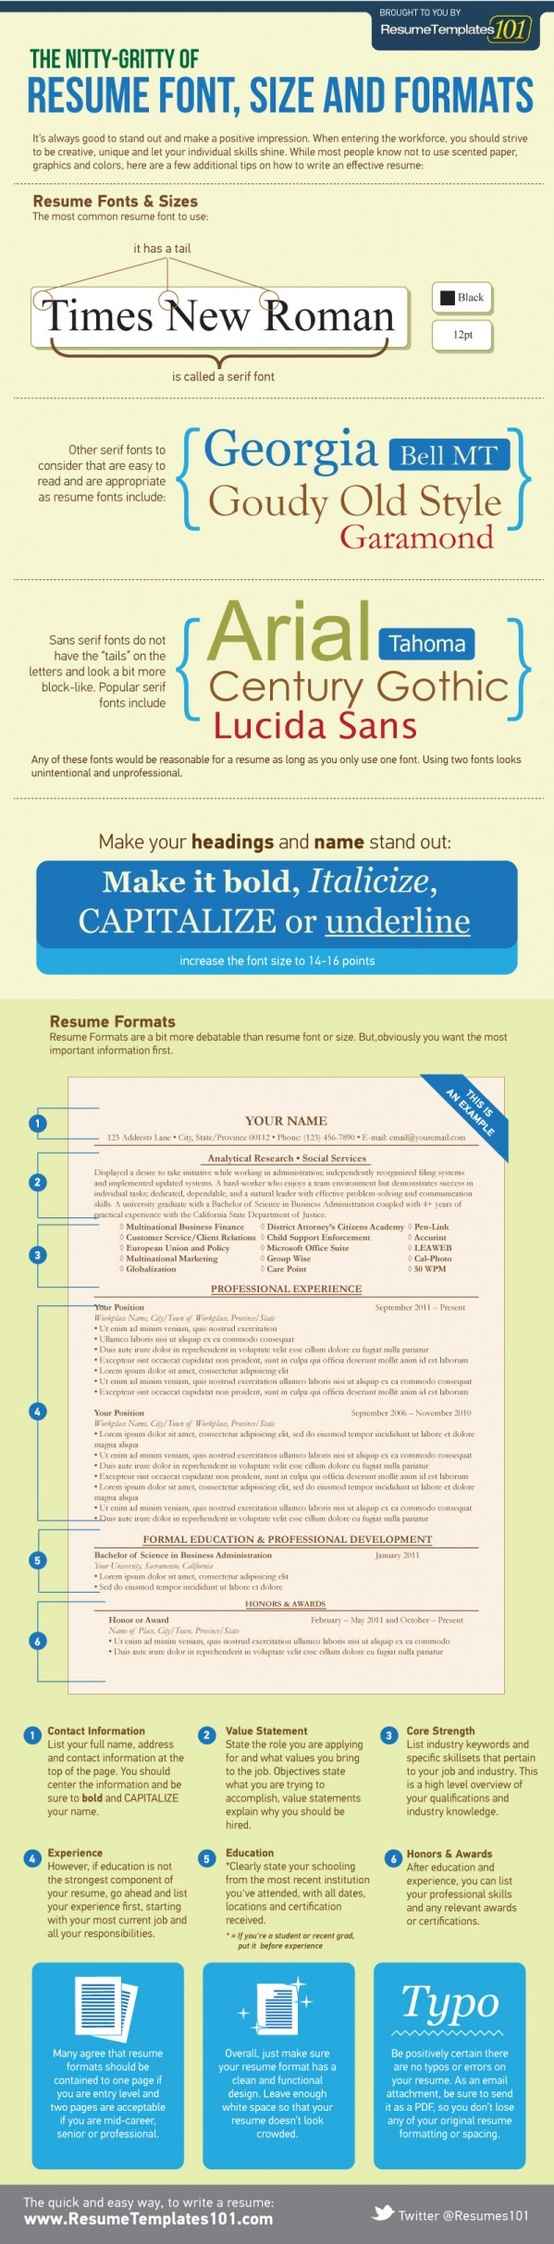 The Nitty Gritty Of Resume Font Size And Formats Resume Cover